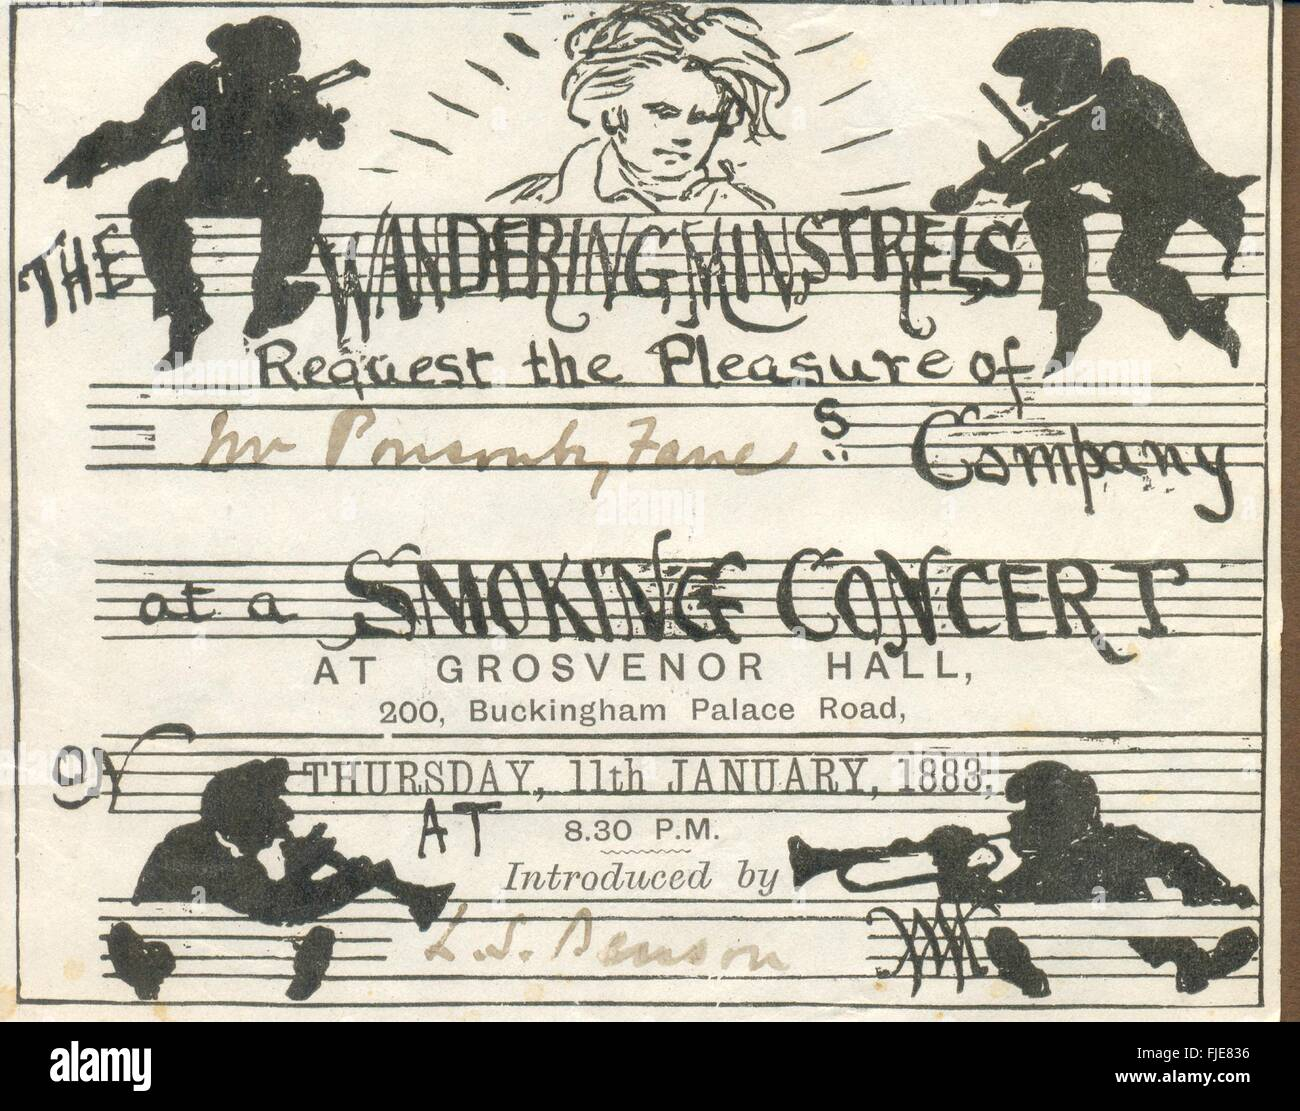 Invitation from The Wandering Minstrels to a Smoking Concertinvite - Stock Image